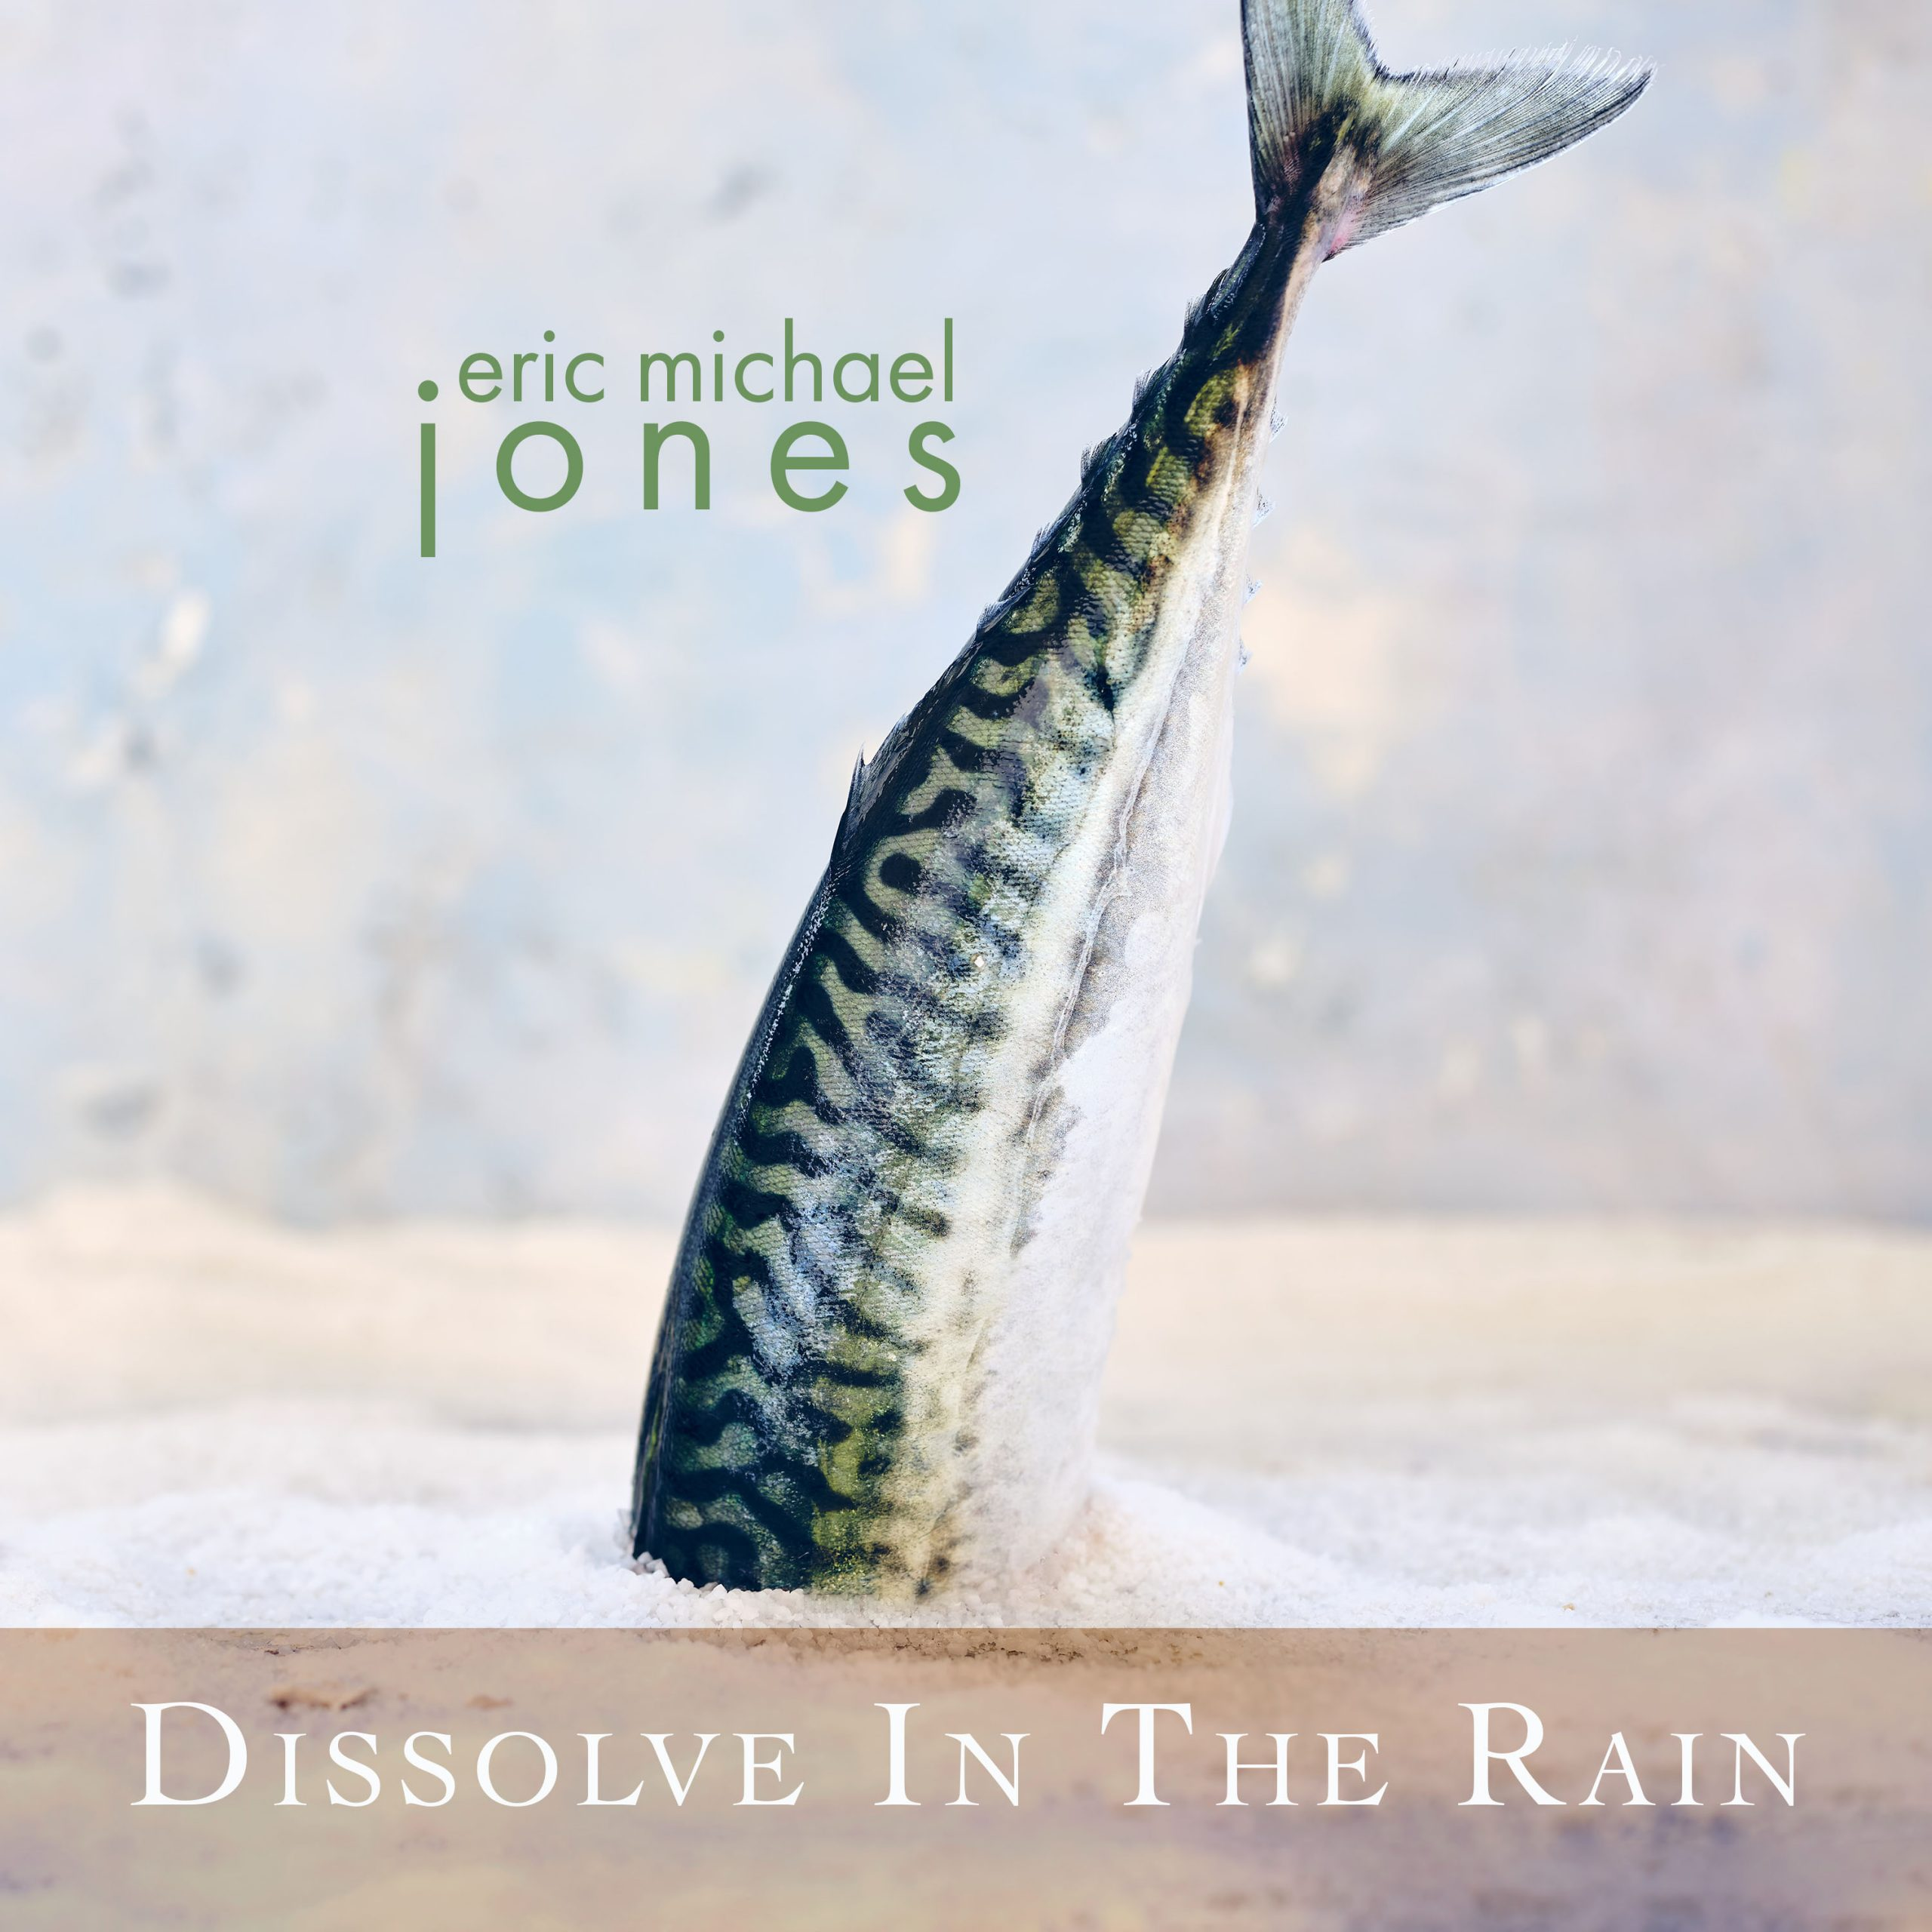 Cover art for Dissolve In The Rain, showing a fish with it's head buried in ice